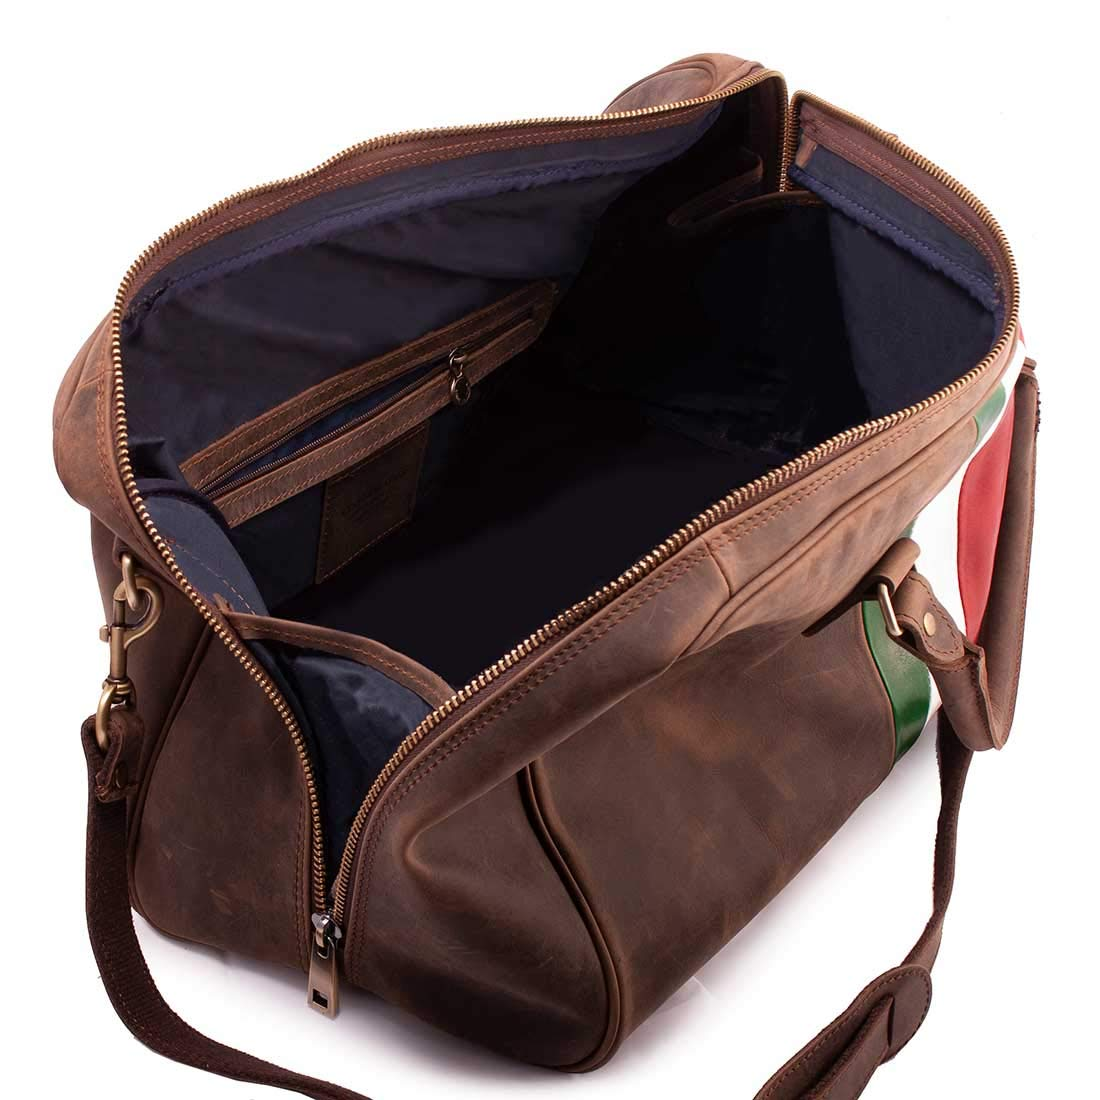 MICHELANGELO Genuine Leather Calf-Skin Italy Lepanto Travel Bag in Vintage Leather 55x28 H31 cm BROWN